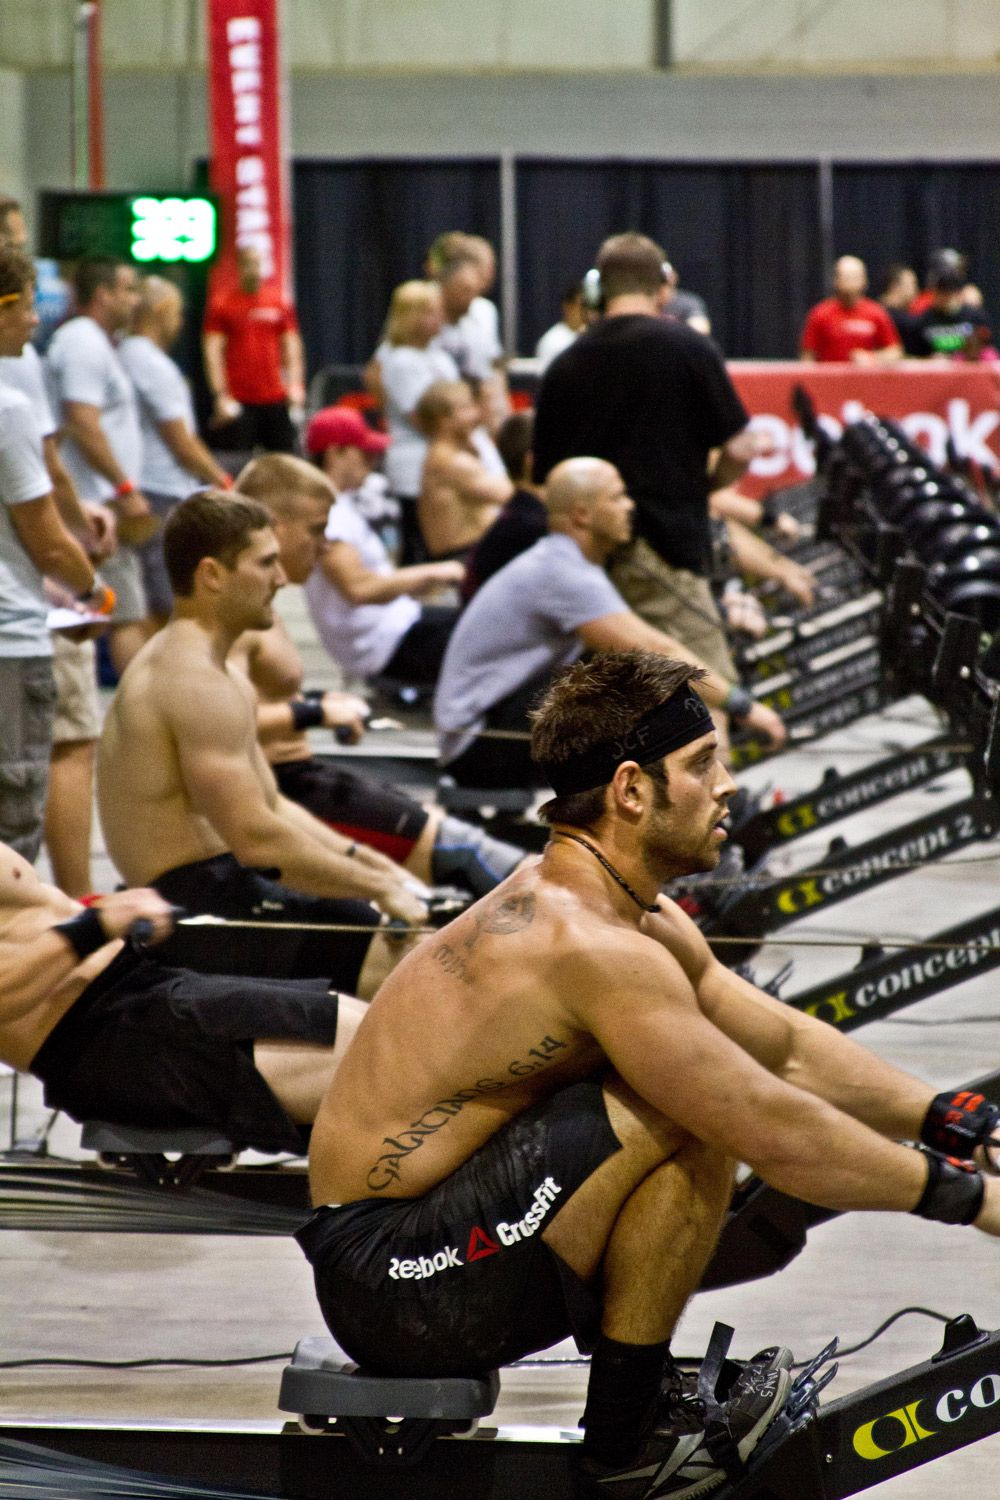 Froning breaking records with those black Concept 2 Rowers